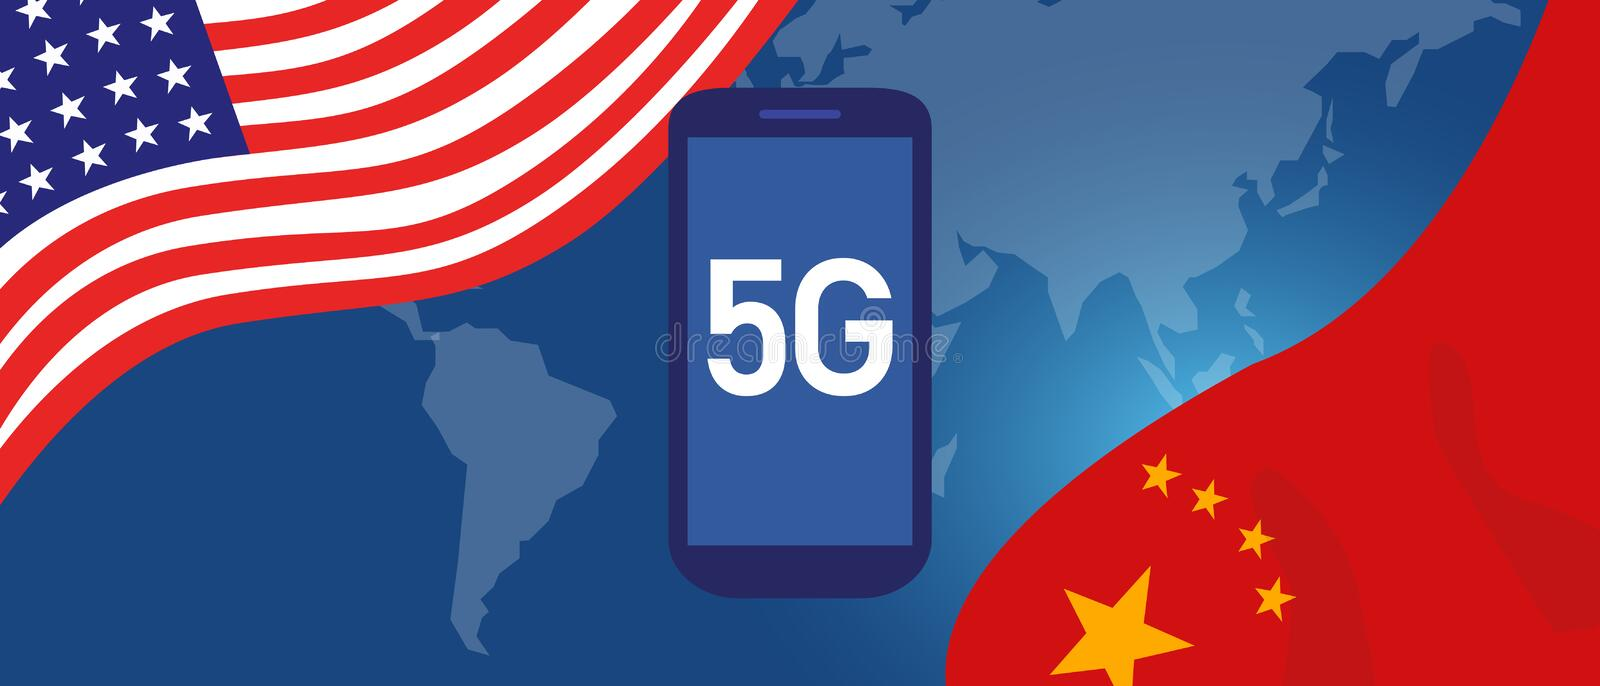 Trade war conflict around 5G network technology illustrated with map and flag between USA and China royalty free illustration